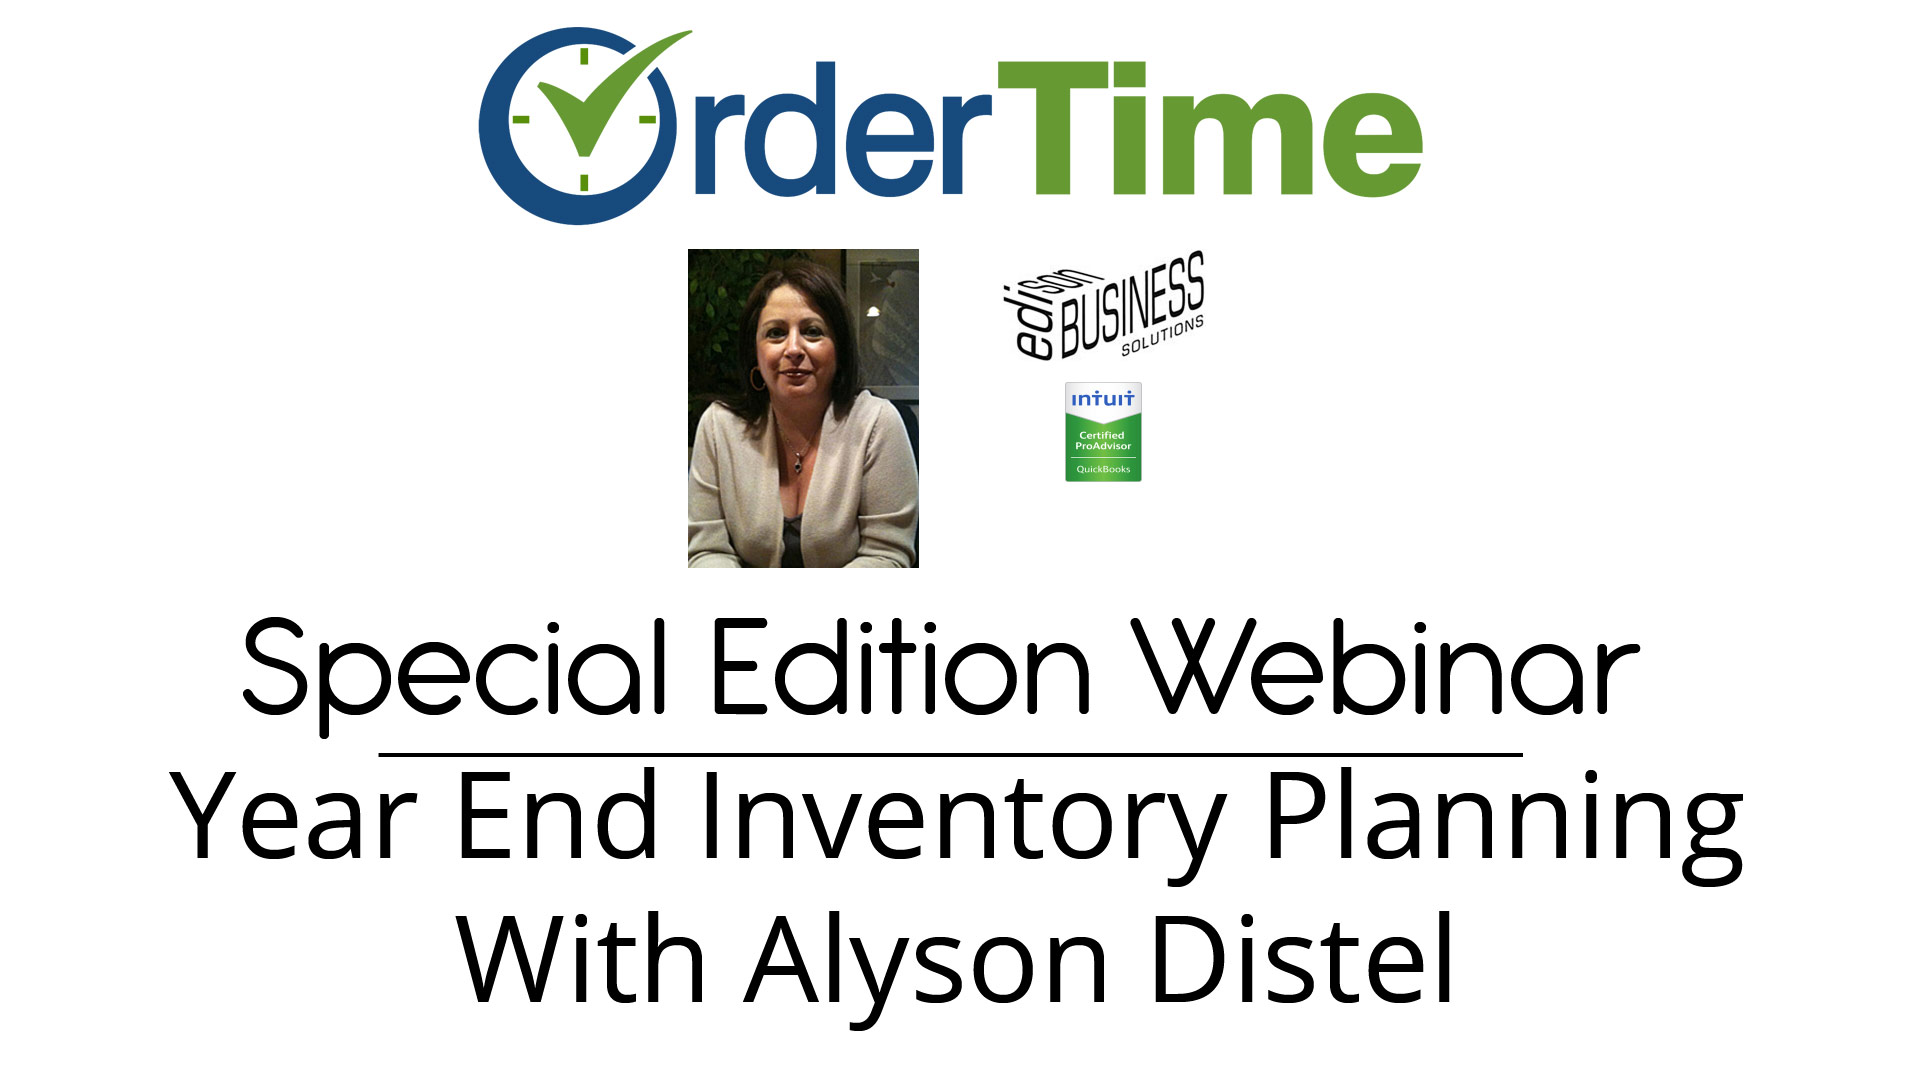 Special Edition Webinar - Year End Inventory Planning